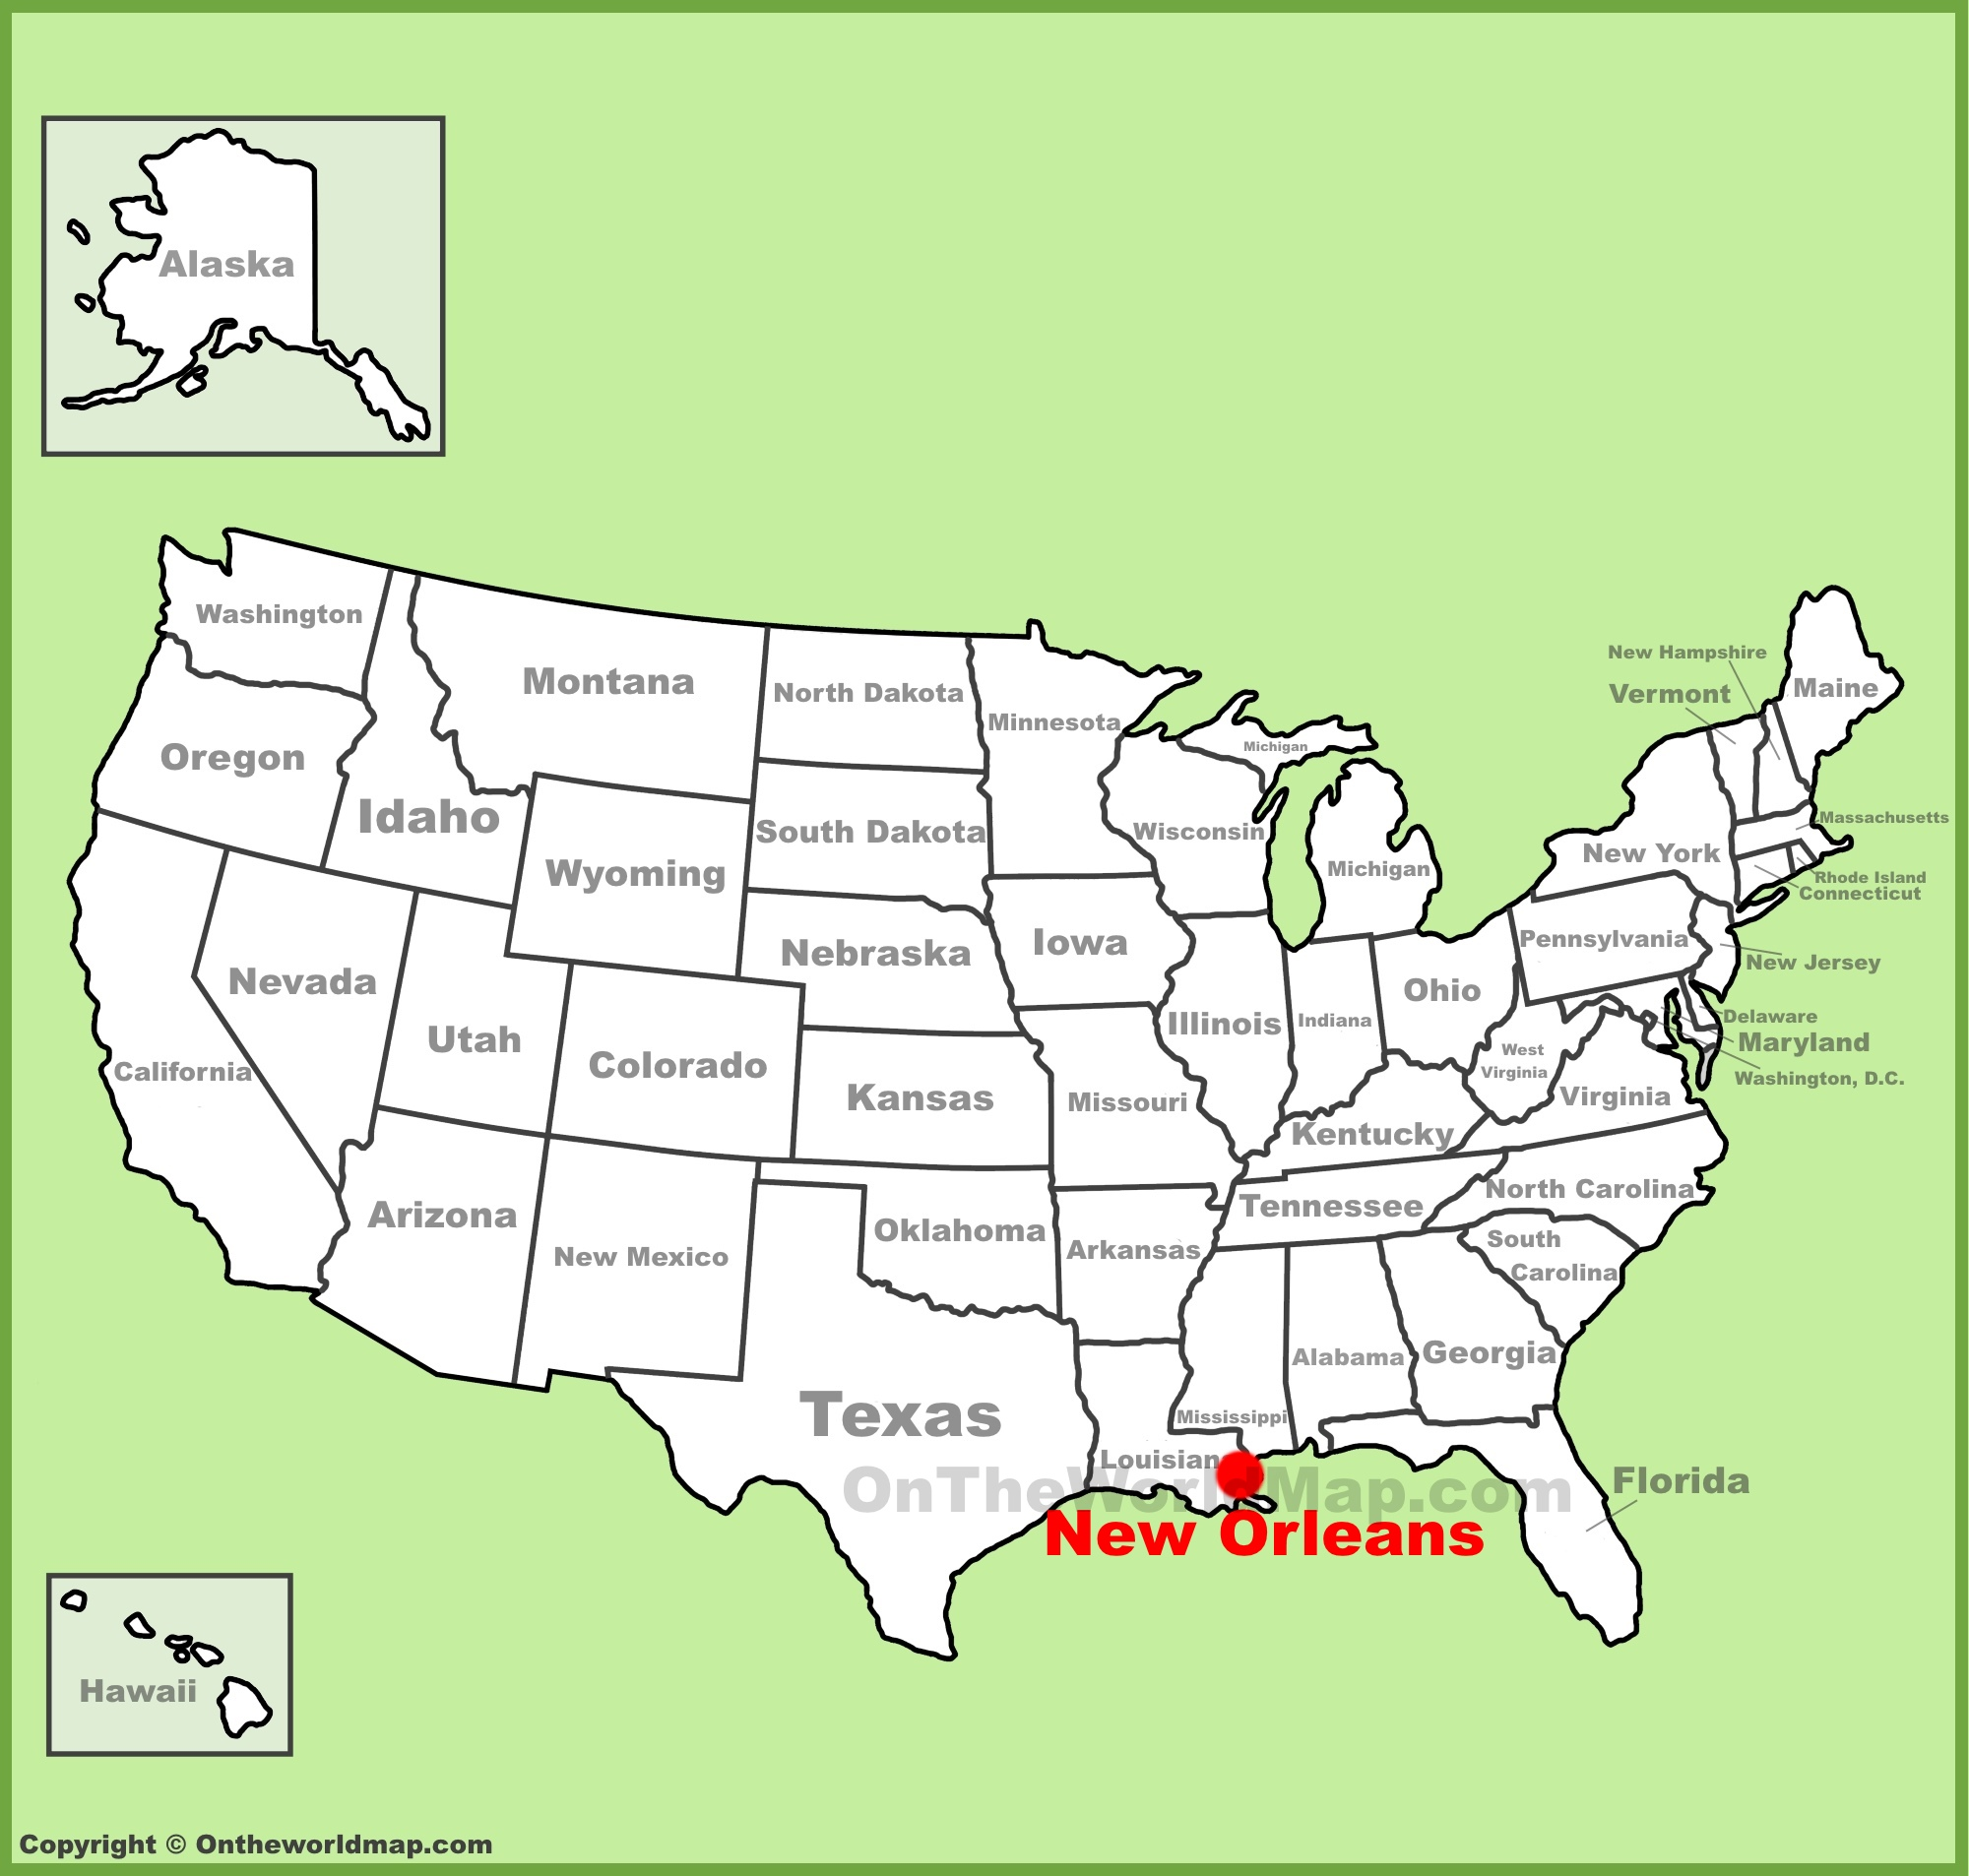 Area of new orleans city. New Orleans Location On The U S Map